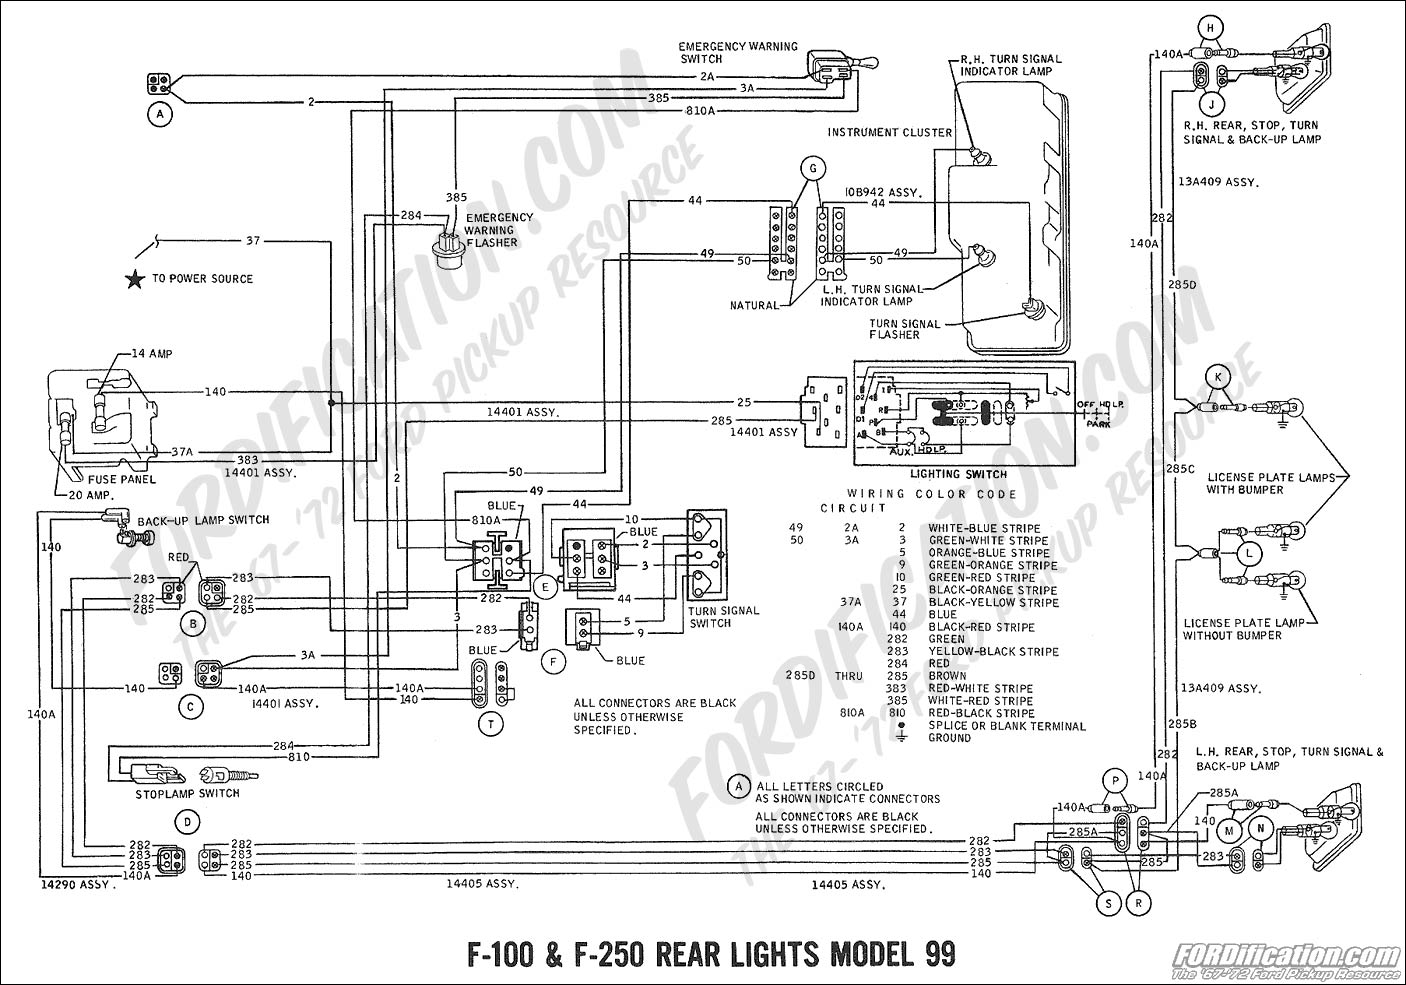 99 CIVIC WIRING DIAGRAM COURTESY LIGHTS L21935 in addition 1999 Ford Taurus Fuse Box Location also 436477 Blower Fan Problem Doesnt Shut Off 3 also 6xlk9 1994 Ford F350 Crew Cab 46o Motor No Fuse Diagram No Parki moreover 2007 Ford Explorer Fuse Box. on 99 explorer fuse box diagram